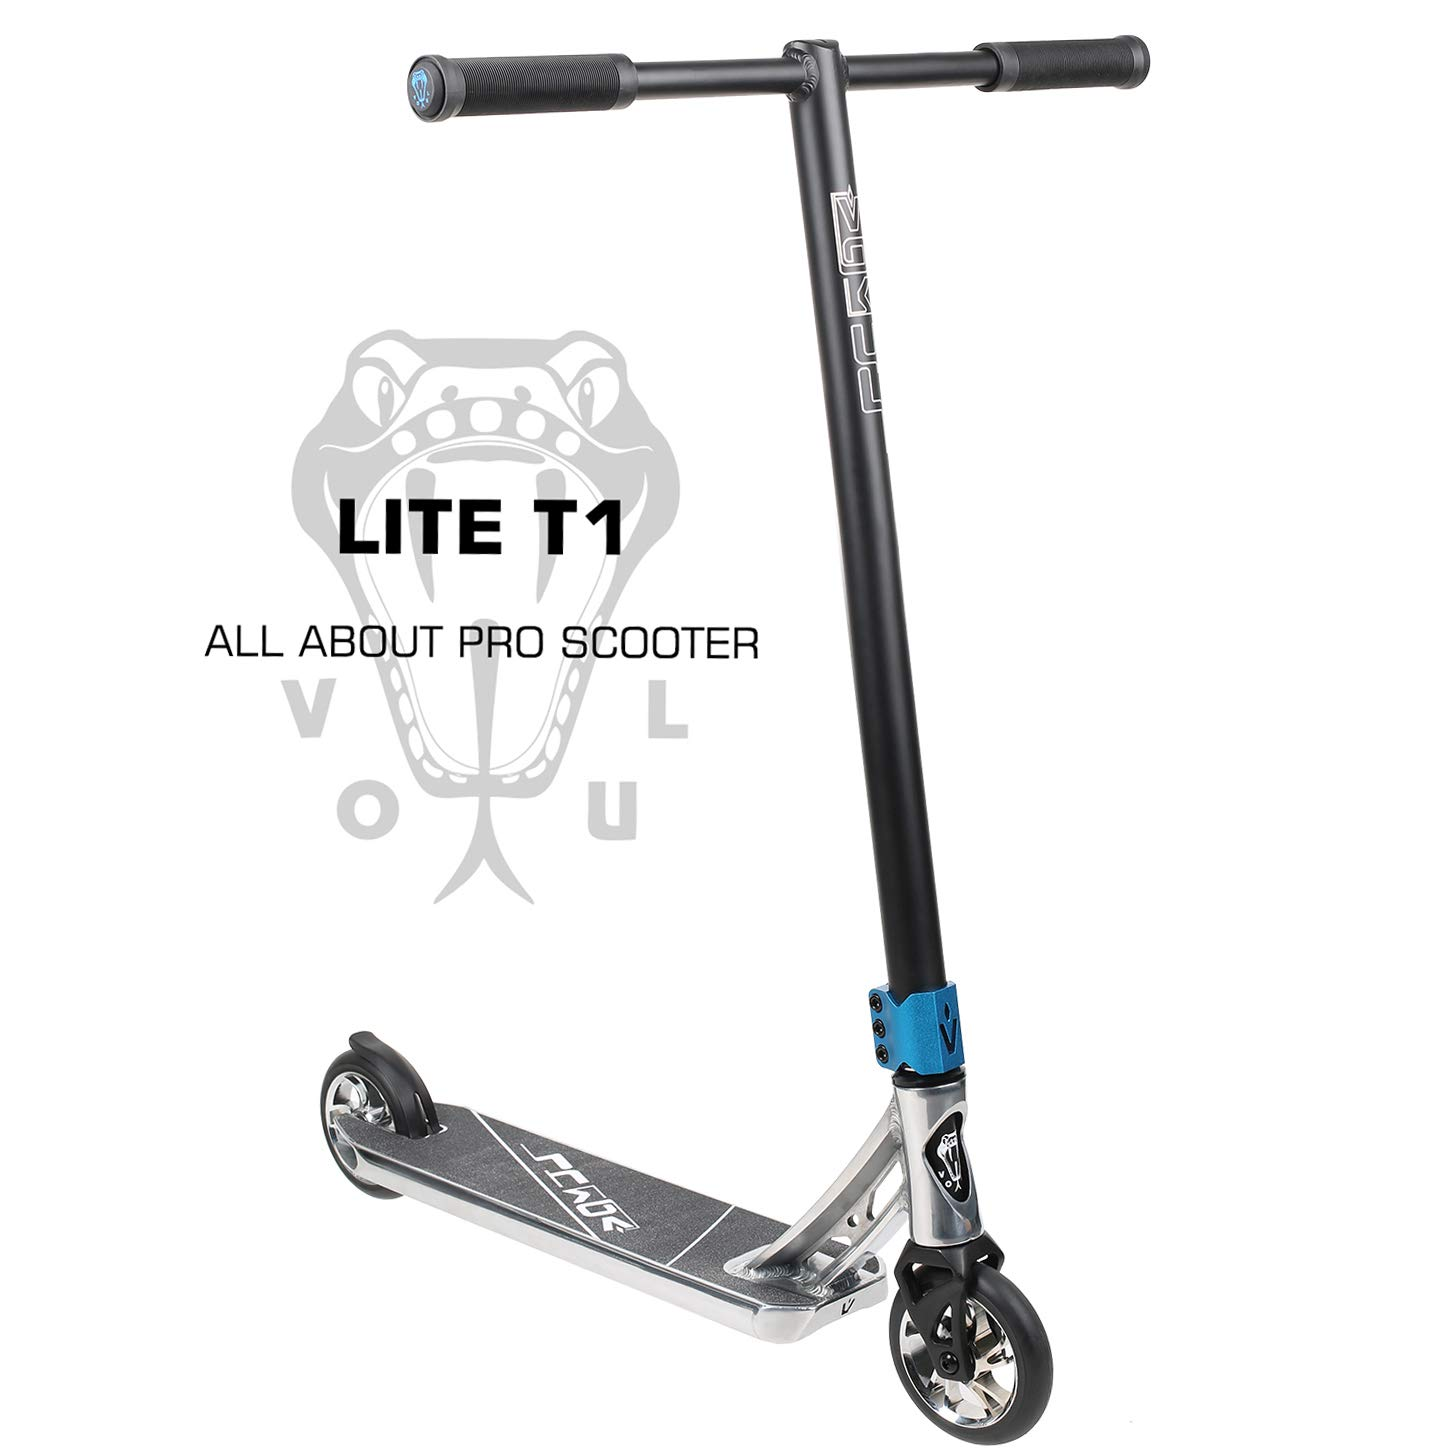 VOKUL LITE Series Complete Pro Stunt Scooter for Kids/Teens, with Reinforced Frame -Lightweight Aluminum Handlebars and 120mm Metal Core Wheels (Silver)